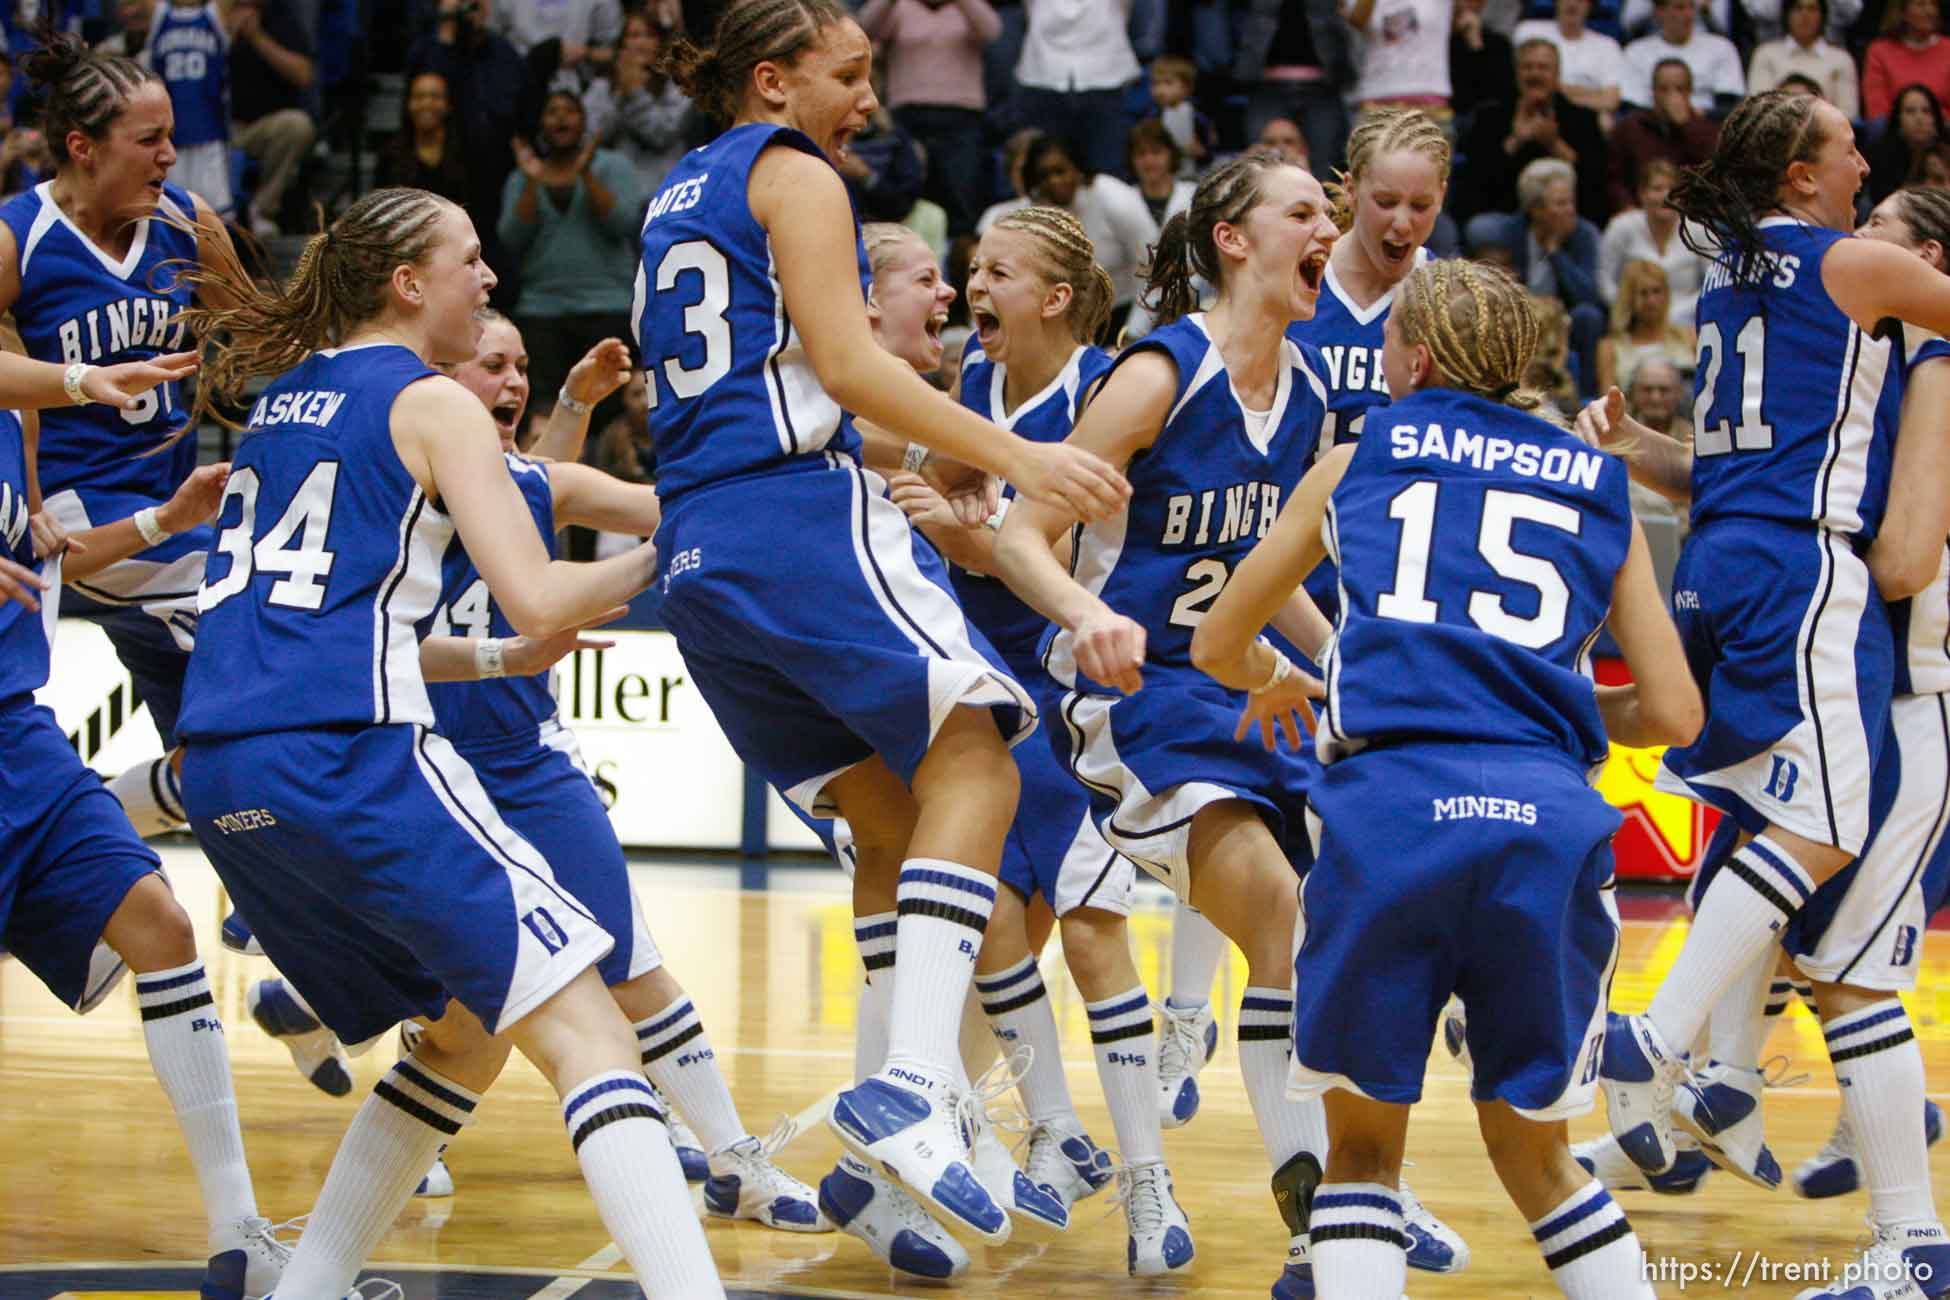 Bingham players run onto the court as time runs out and Bingham wins the state championship. Taylorsville - Bingham wins the state championship. Bingham vs. Skyline High School, 5A Girls State Basketball Championship game at Salt Lake Community College.